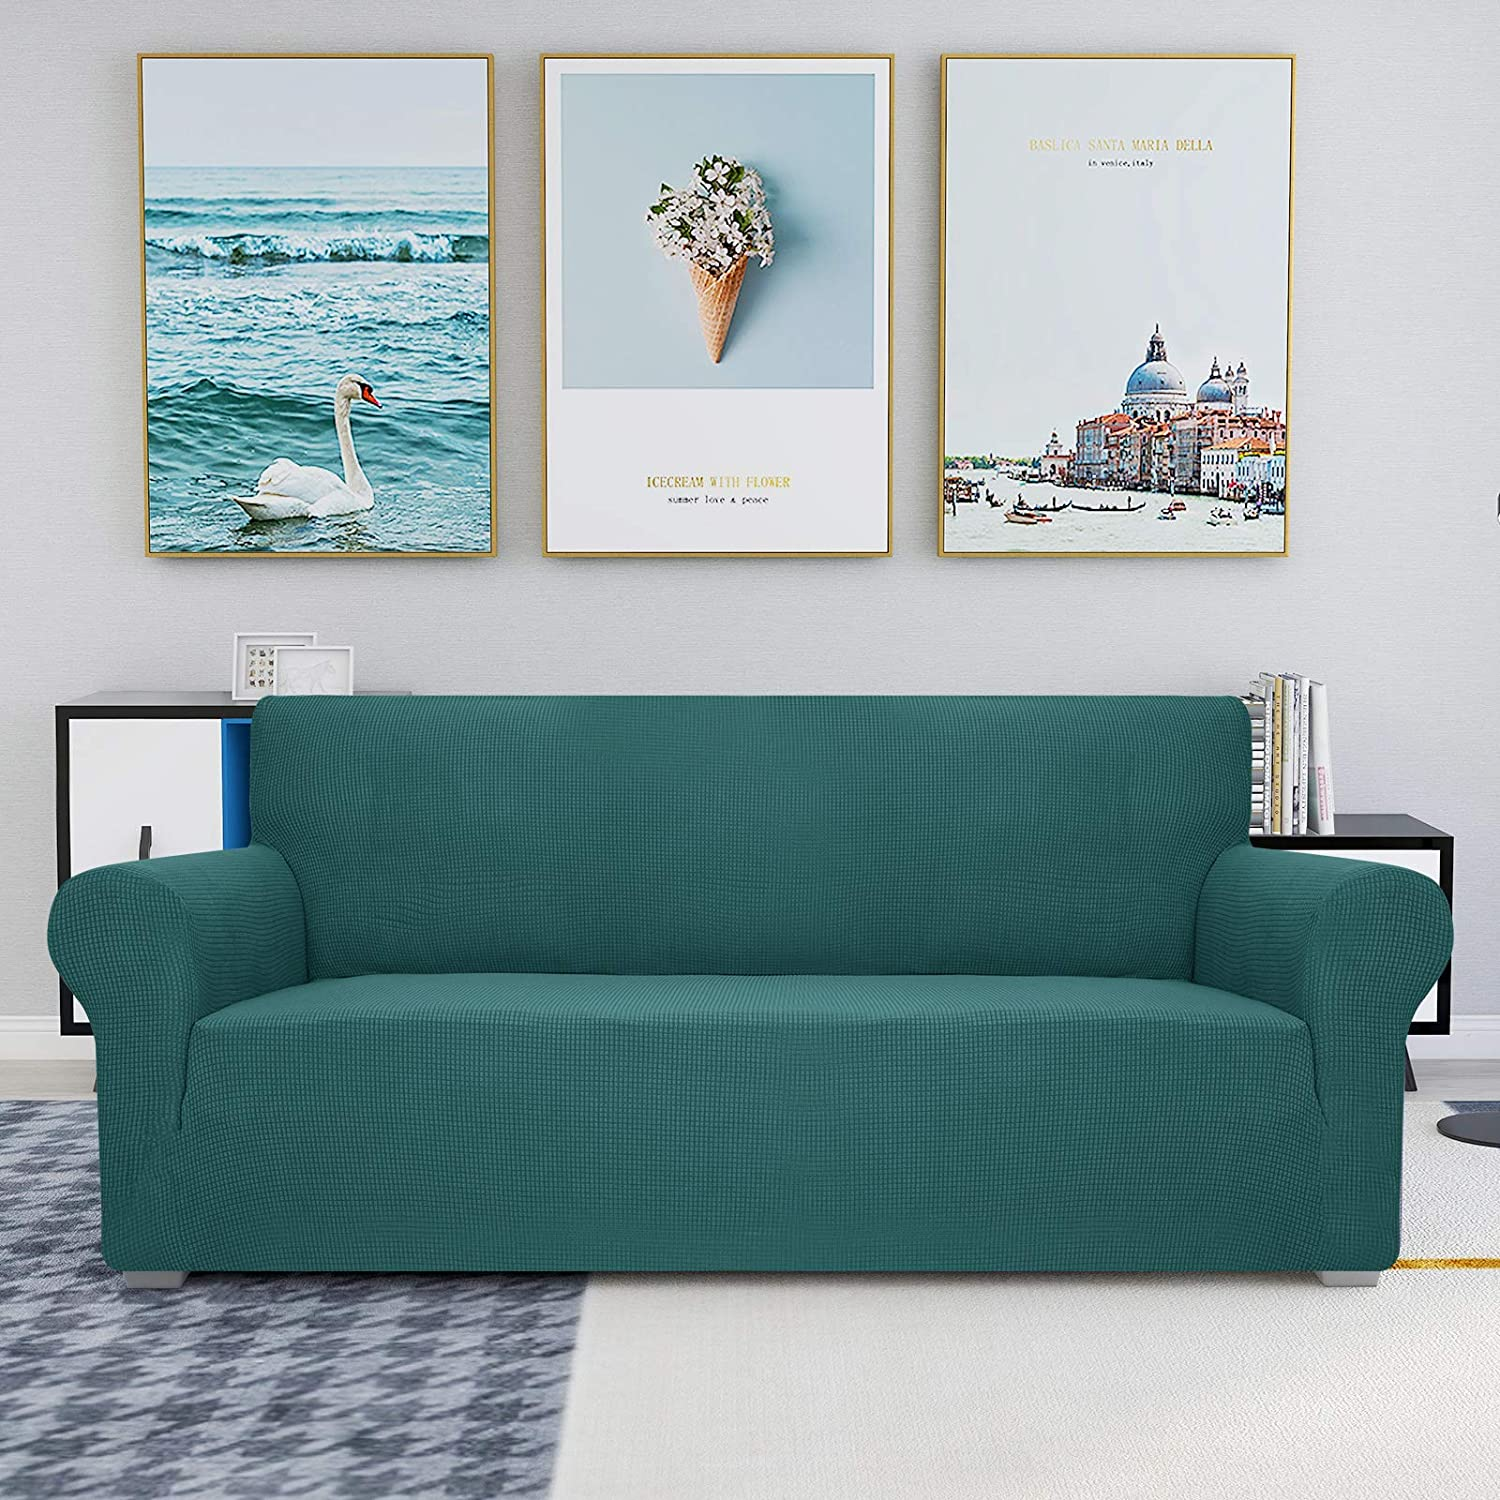 JIVINER High Stretch Couch Covers for 3 Cushion Couch 1-Piece Jacquard Elastic Sofa Slipcovers Anti Slip Sofa Cover with Elastic Bottom Furniture Protector for Kids Pets (Sofa, Blakish Green)